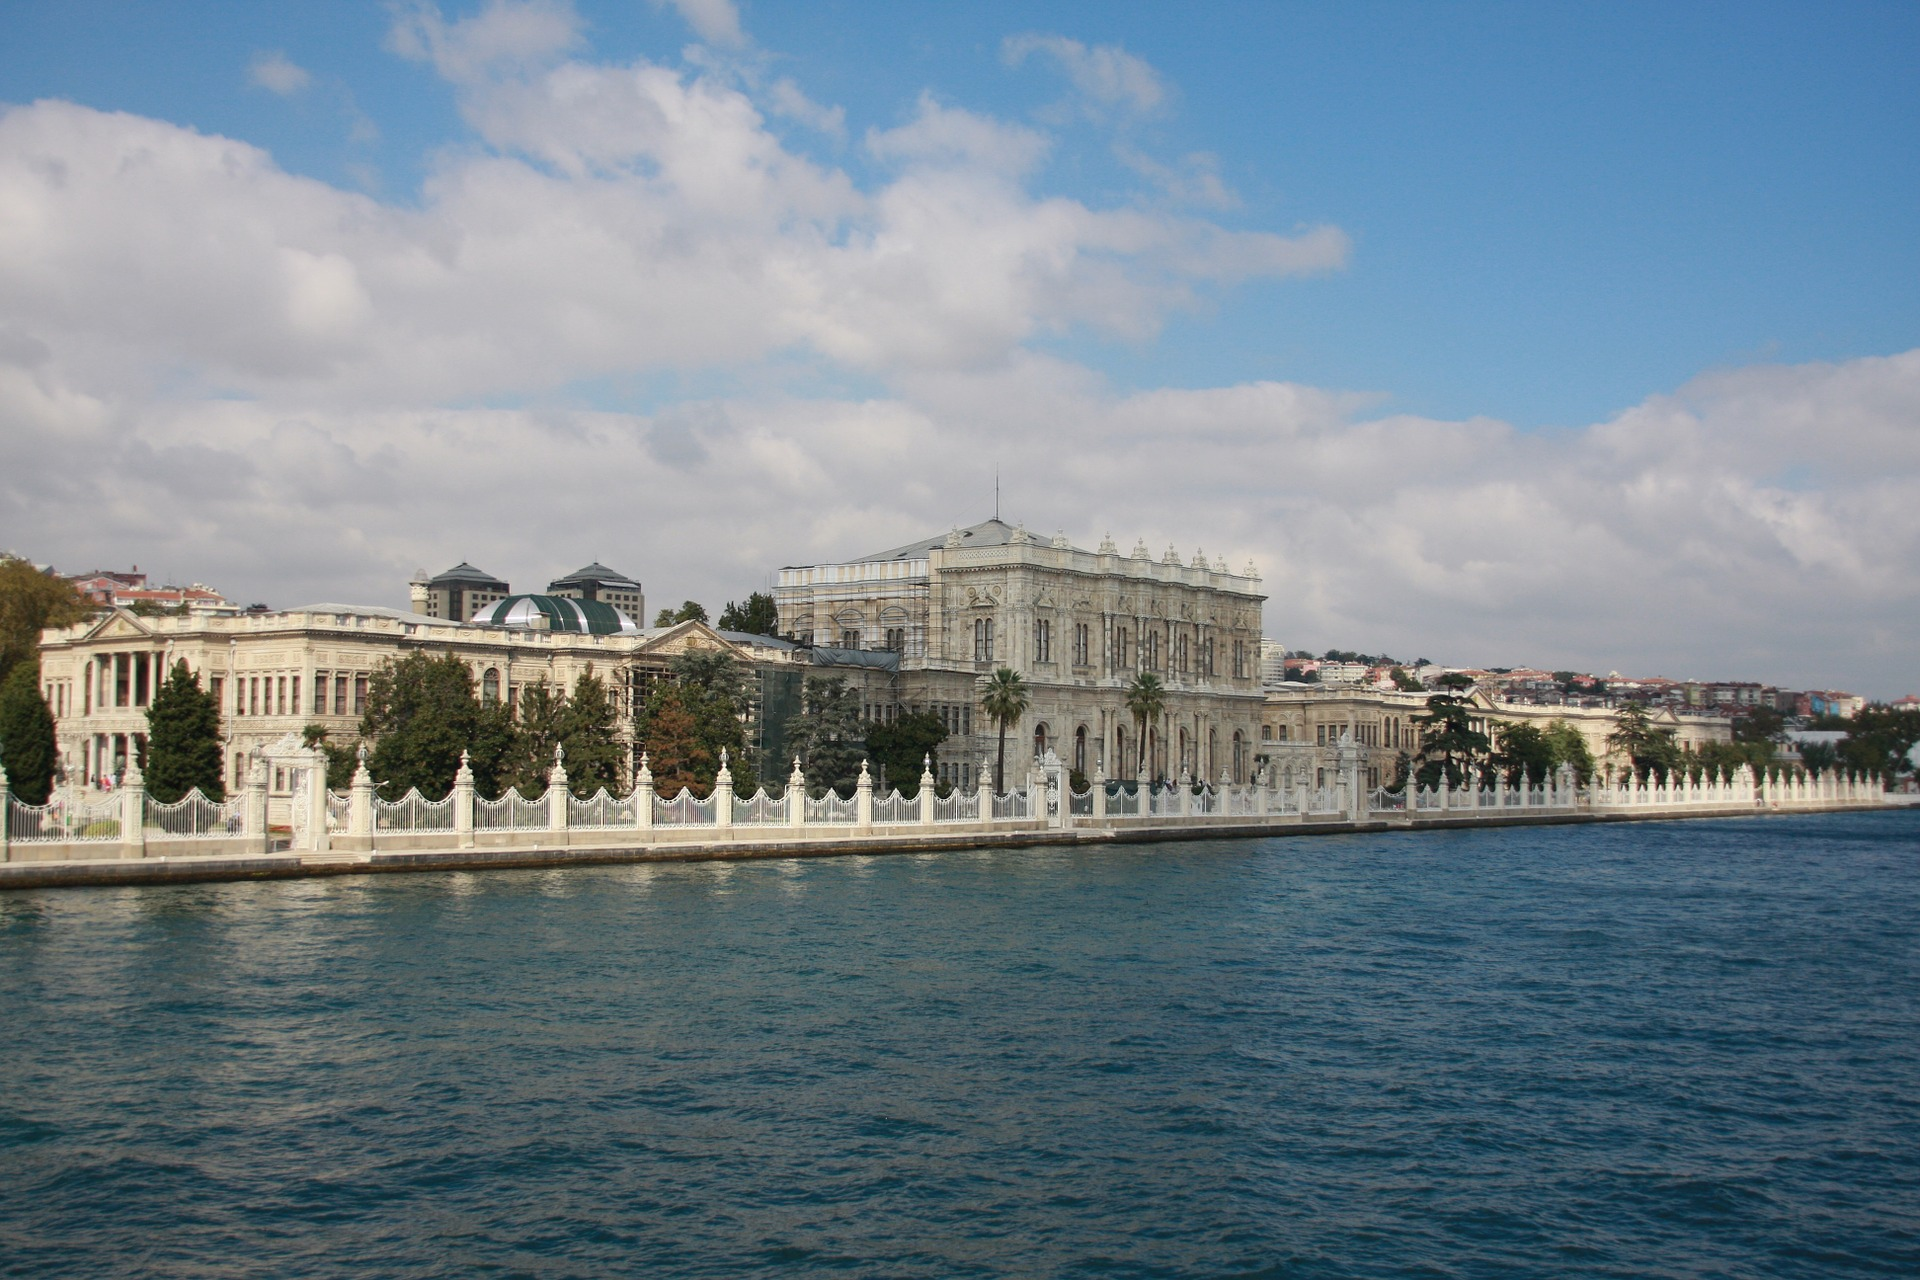 Dolmabahçe (Dolmabahce) Palace in Istanbul, Turkey